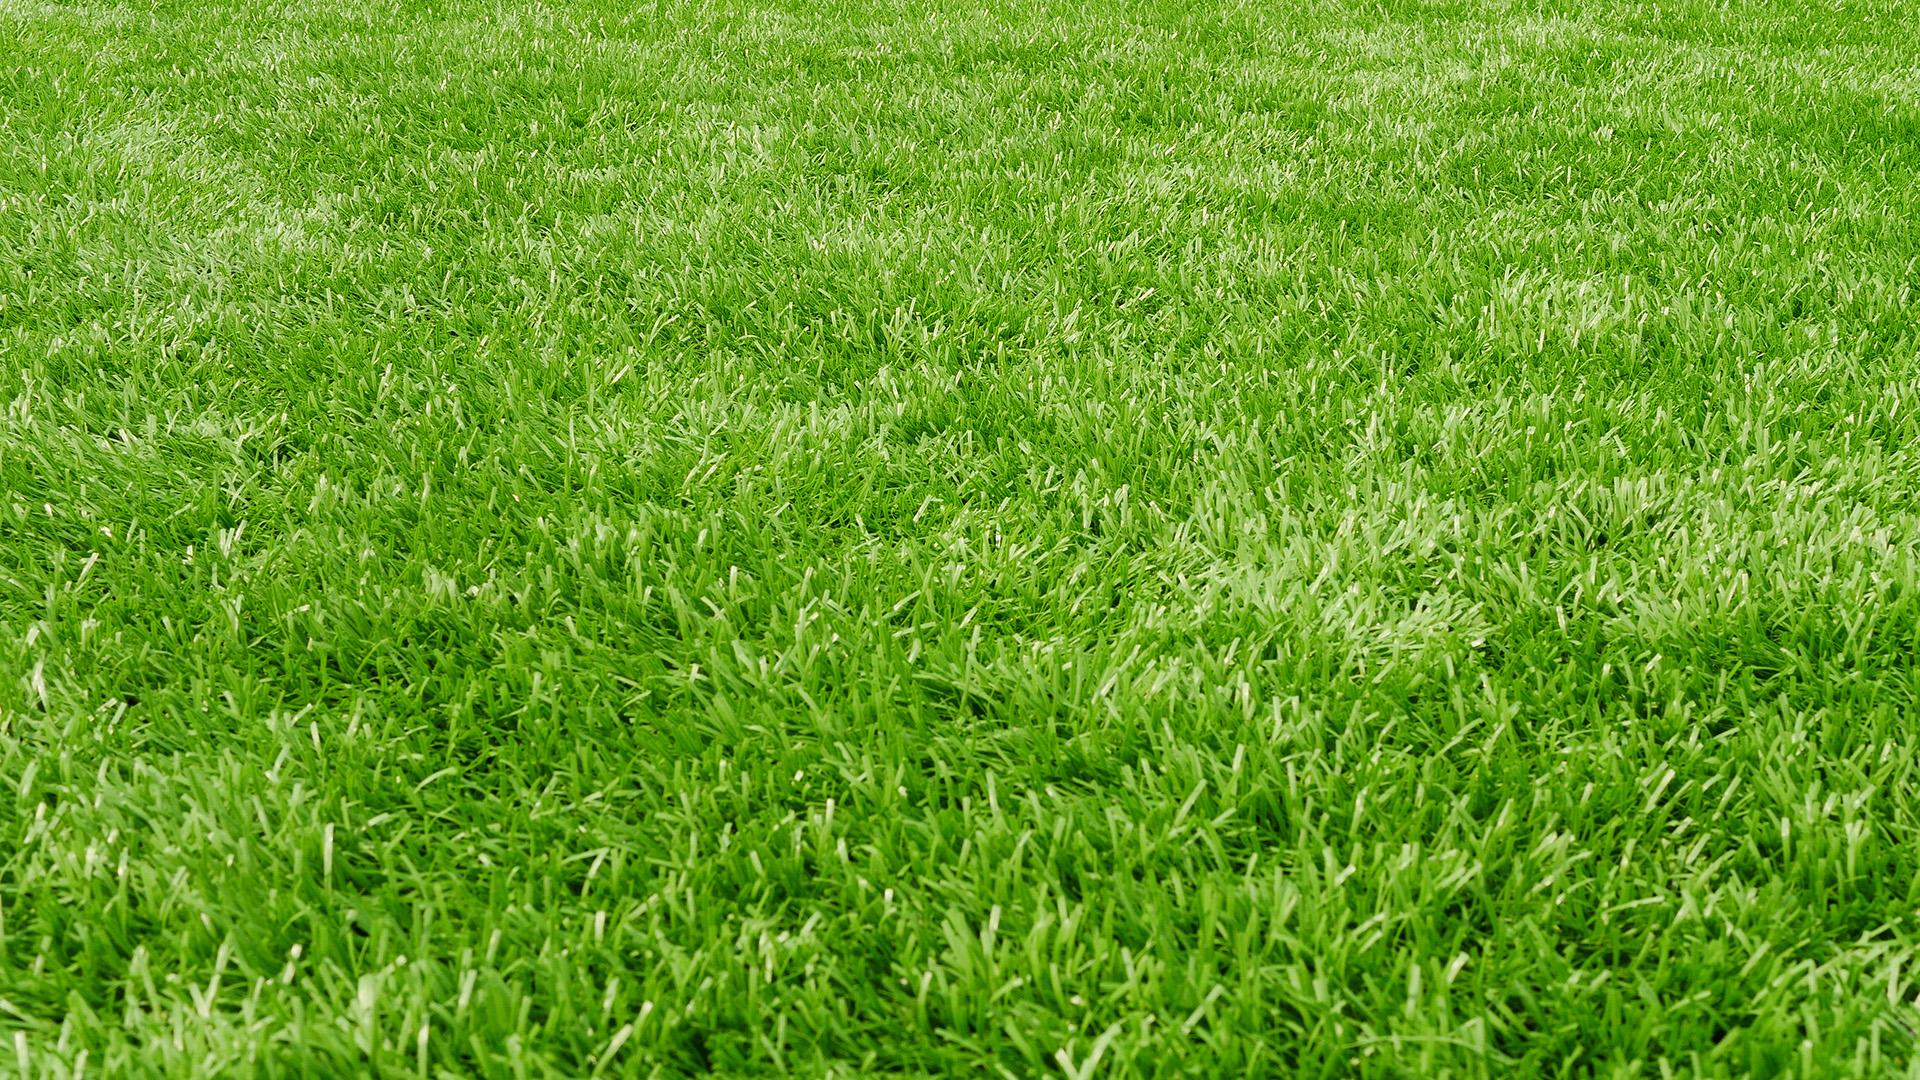 5 Tips For Taking Care Of Your Lawn Rachael Ray Show